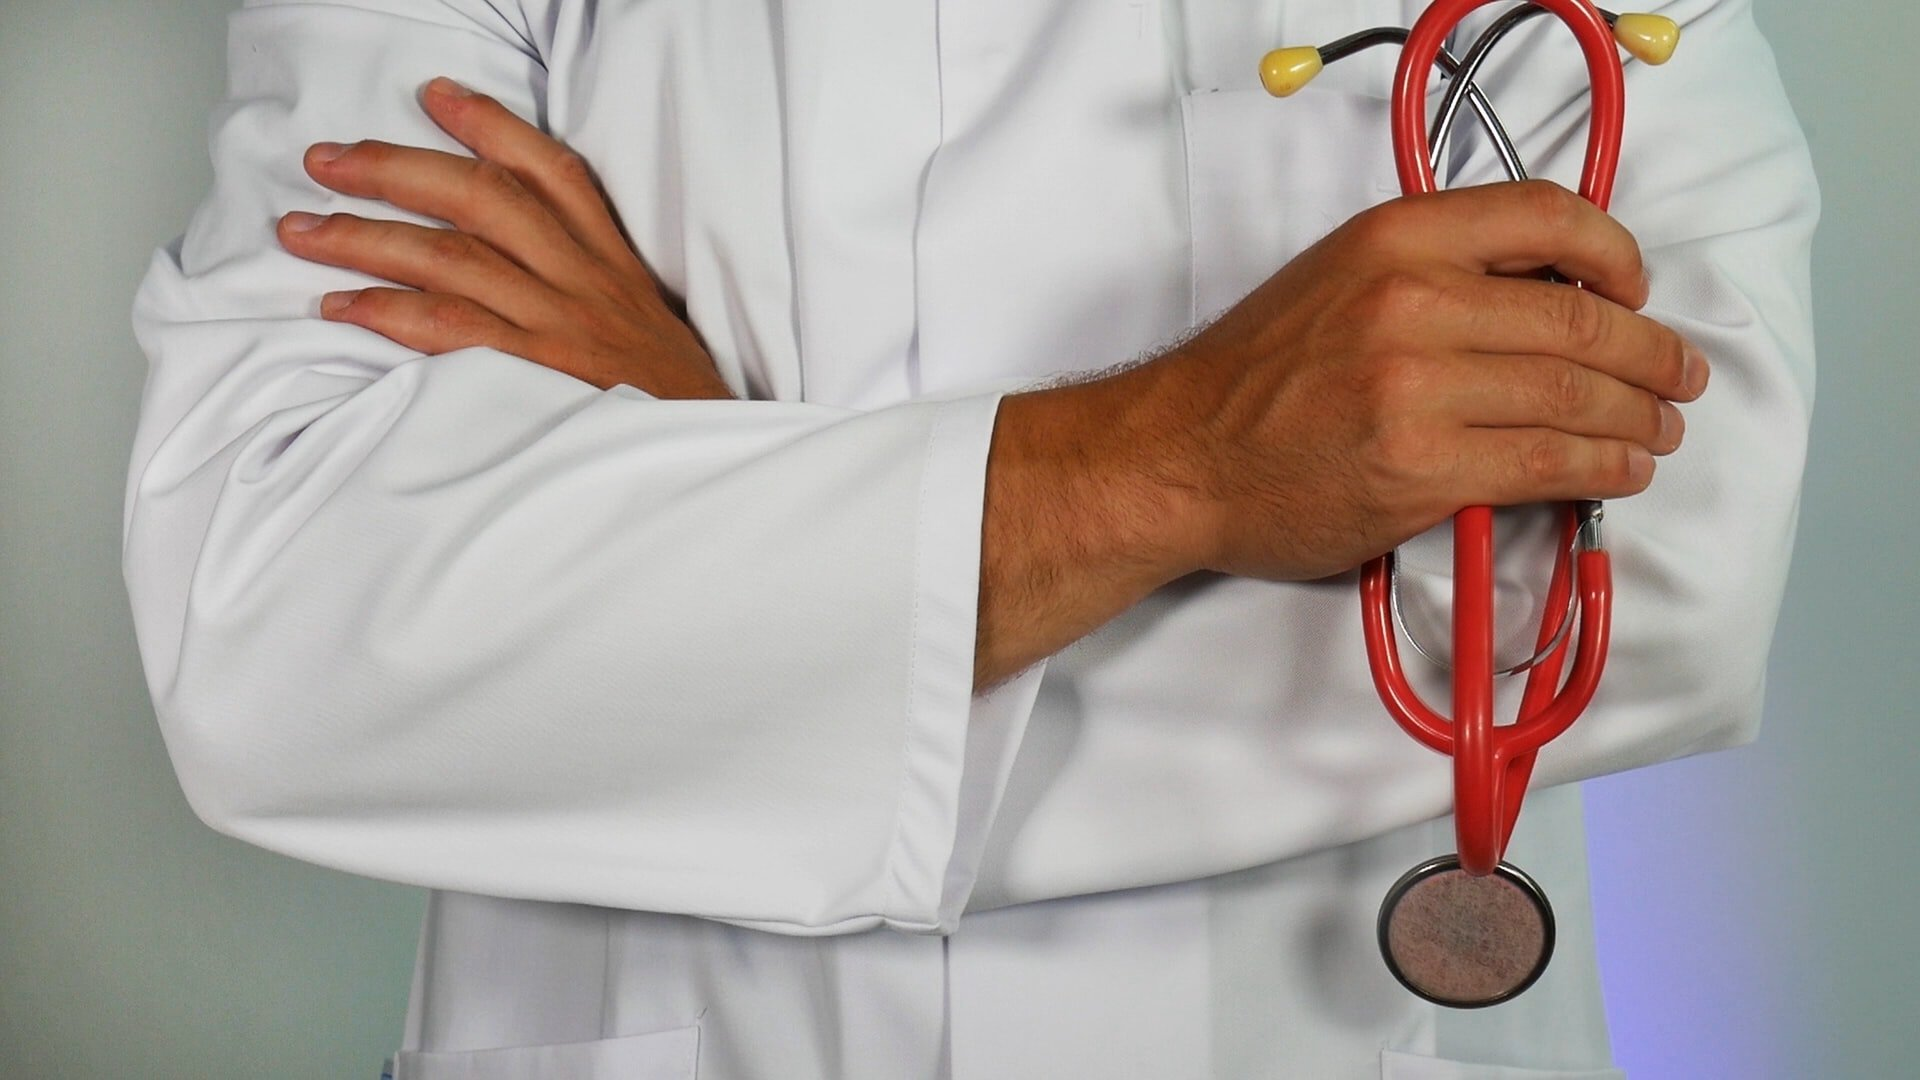 Medical Bias: How Dangerous Stereotypes Can Lead To Wrongful Death